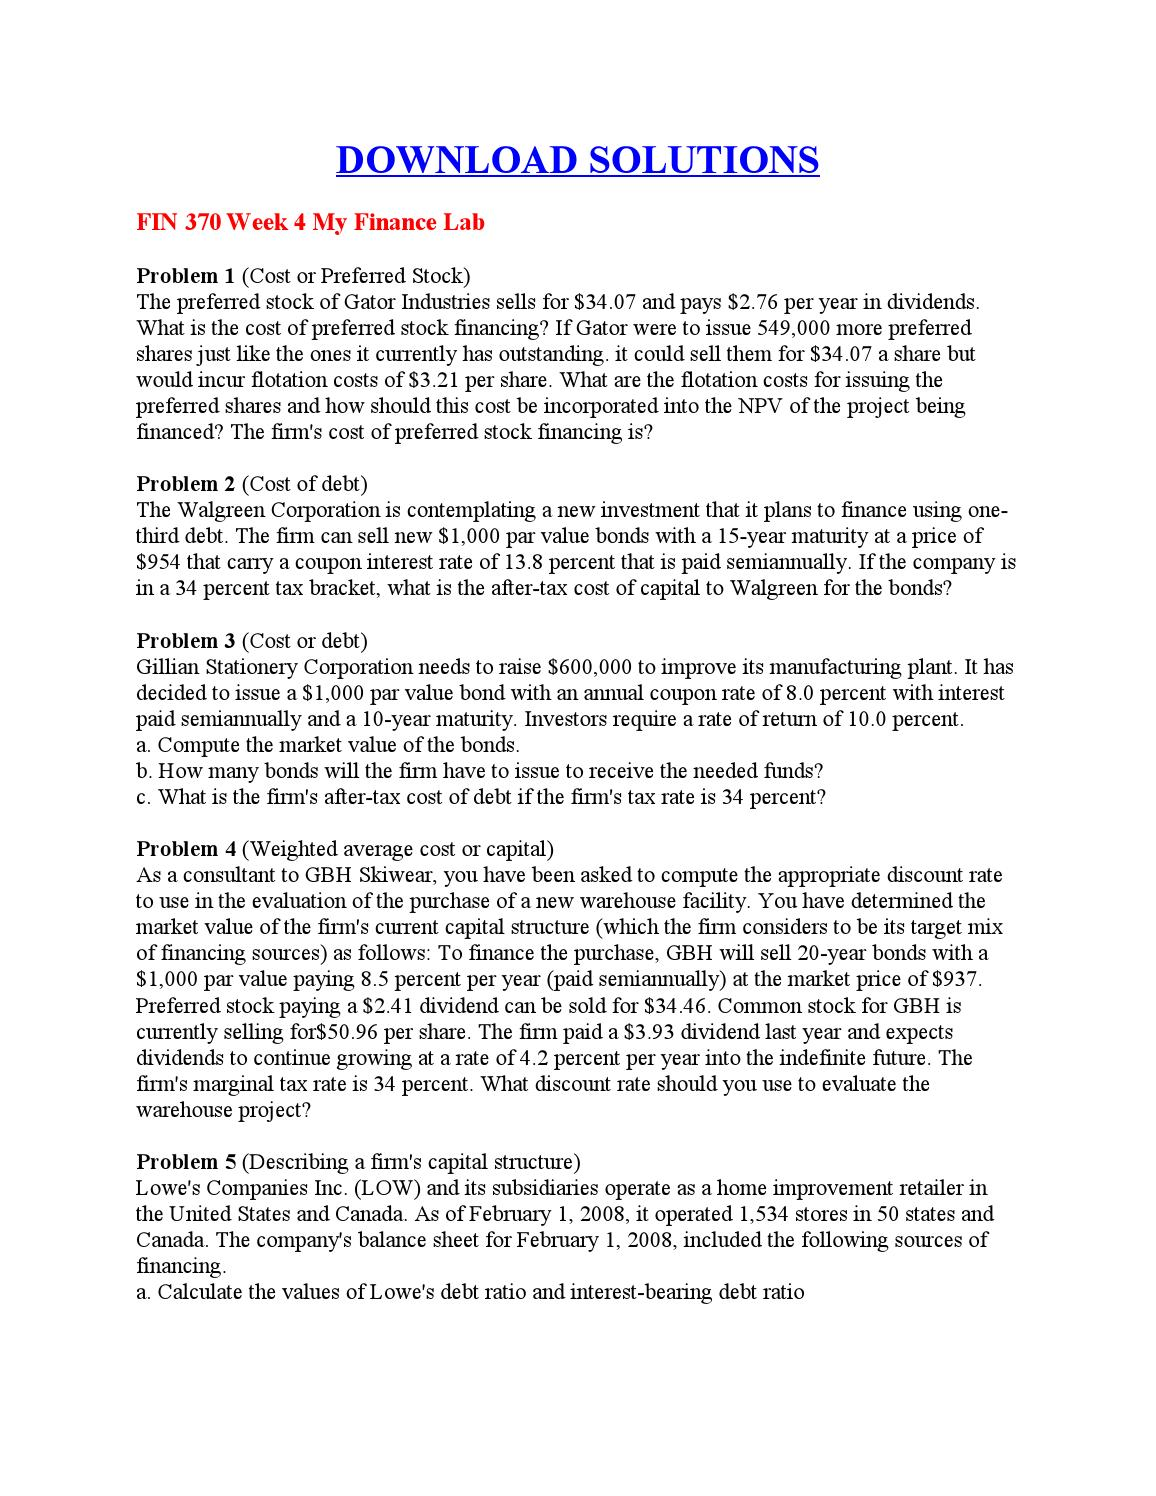 fin 370 week 2 my finance lab View lab report - fin_370_week_2_lab from fin 370 at university of phoenix click to download answers fin 370 week 2 my finance lab 1) templeton extended care facilities, inc is considering the.